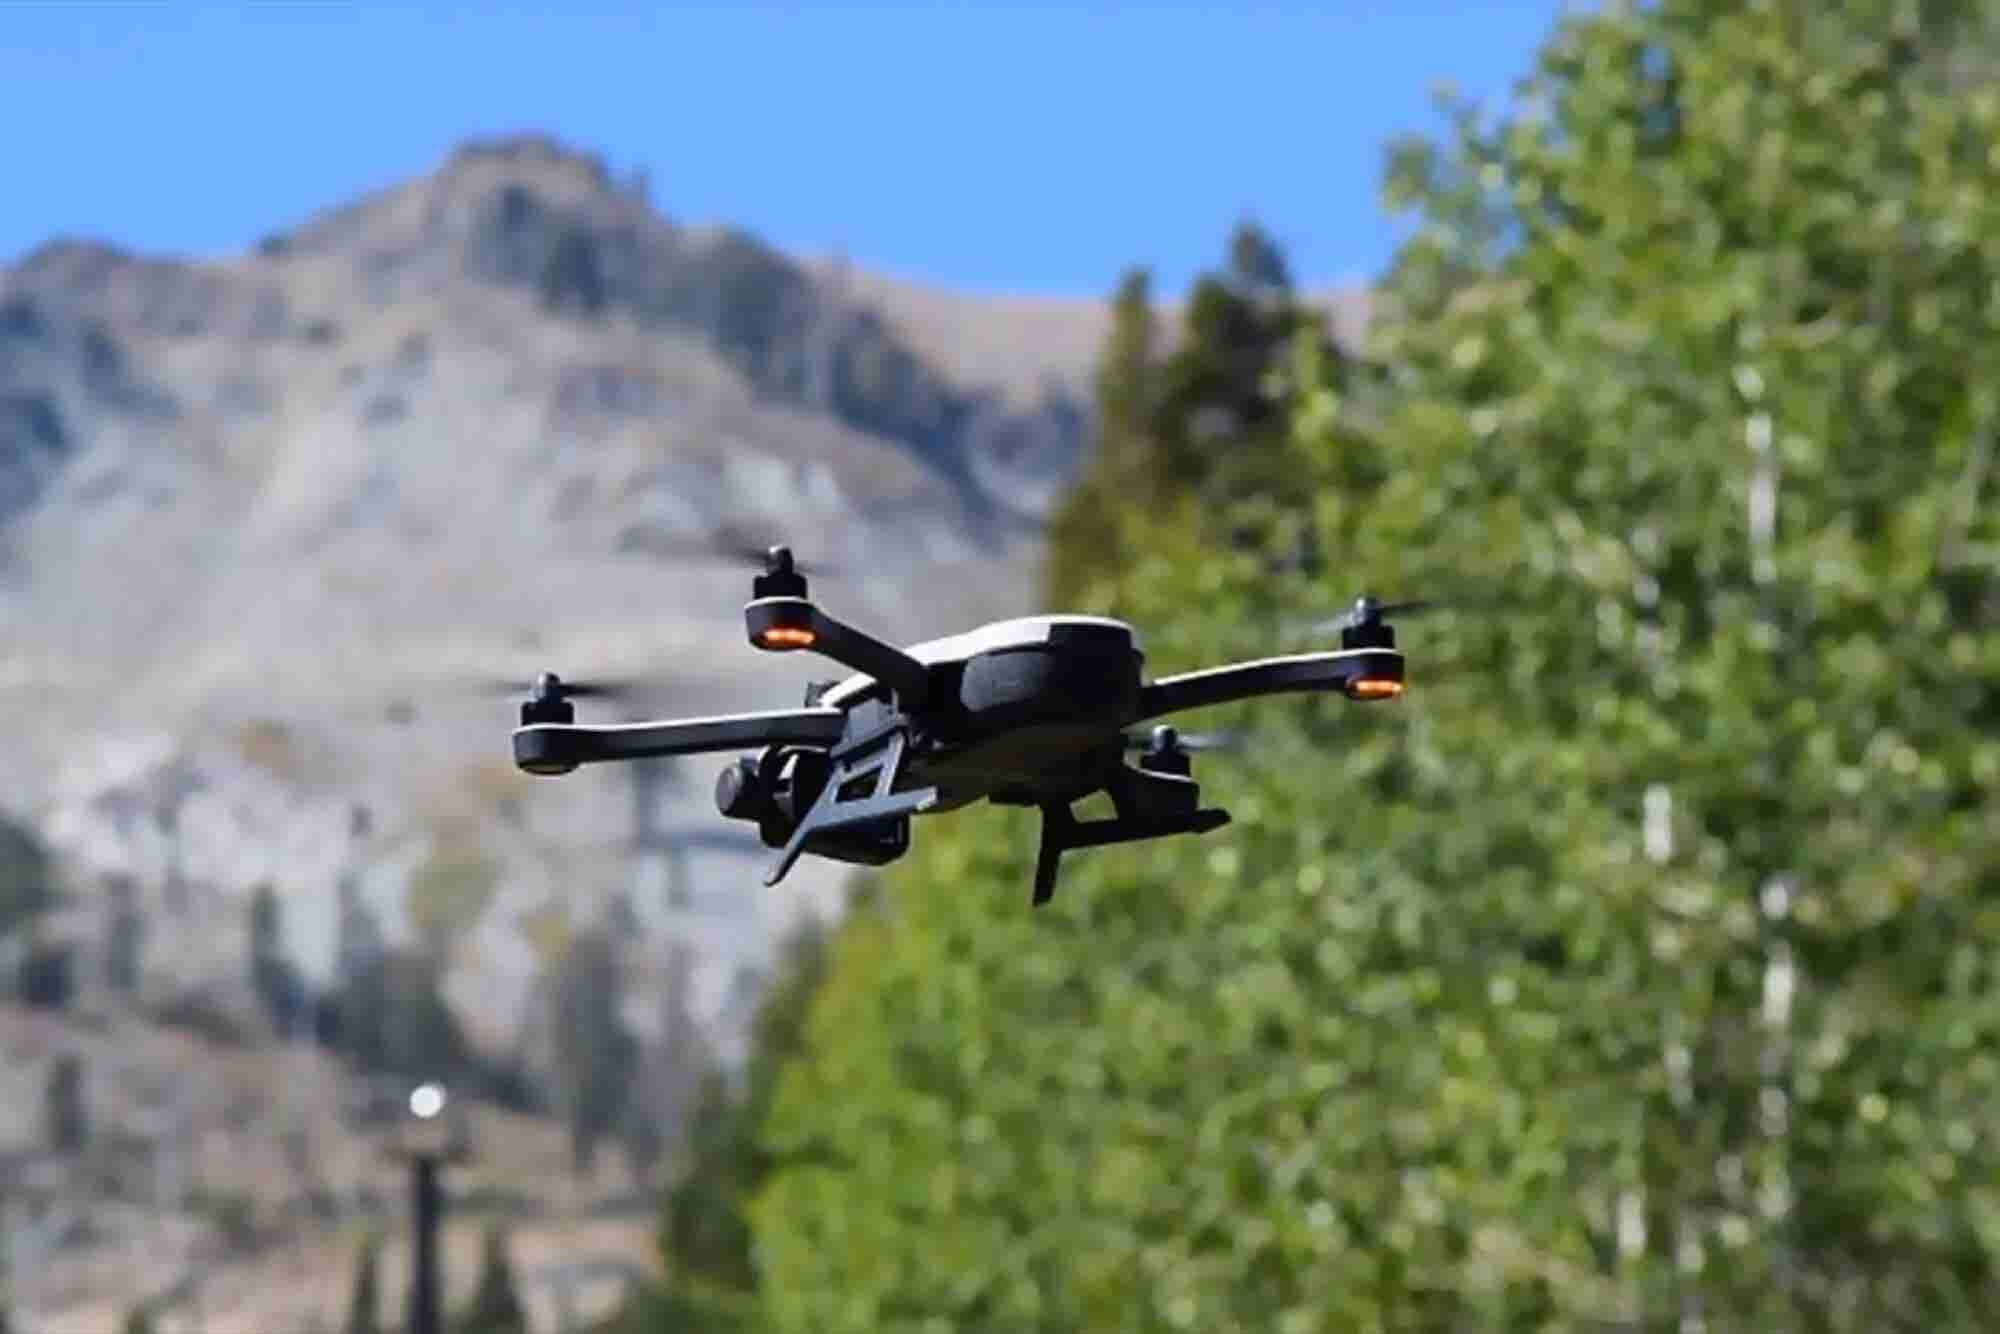 GoPro Gives Up on Drones